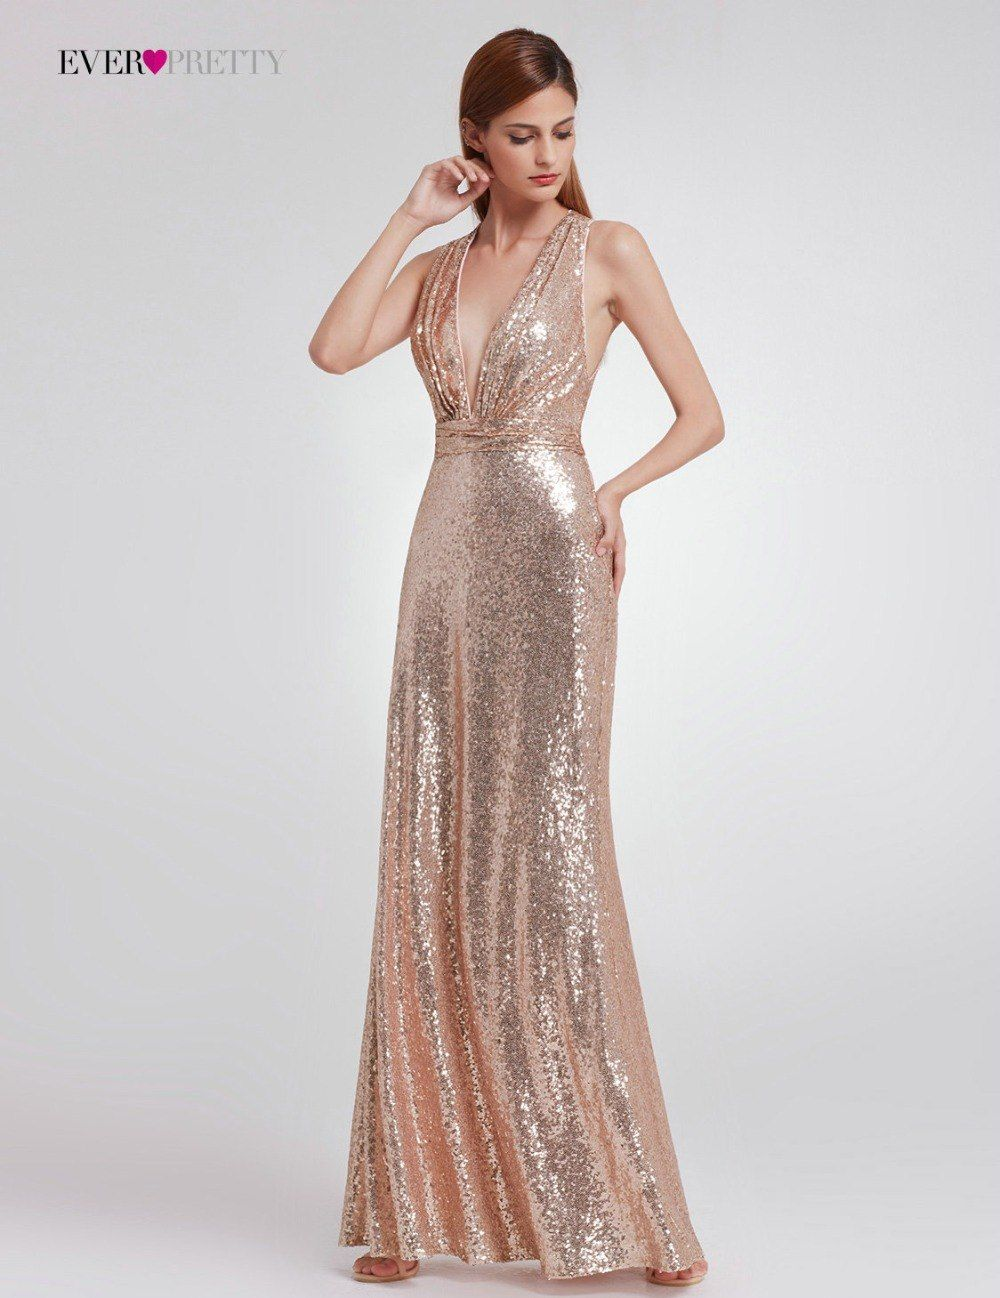 2018 Straight Modern Sequined Evening Dress Ever Pretty EP07109 Women S  Sexy Long Deep V-Neck Sleeveless Shiny Party Dresses - TakoFashion - Women s  ... 9d4beb77bdd6